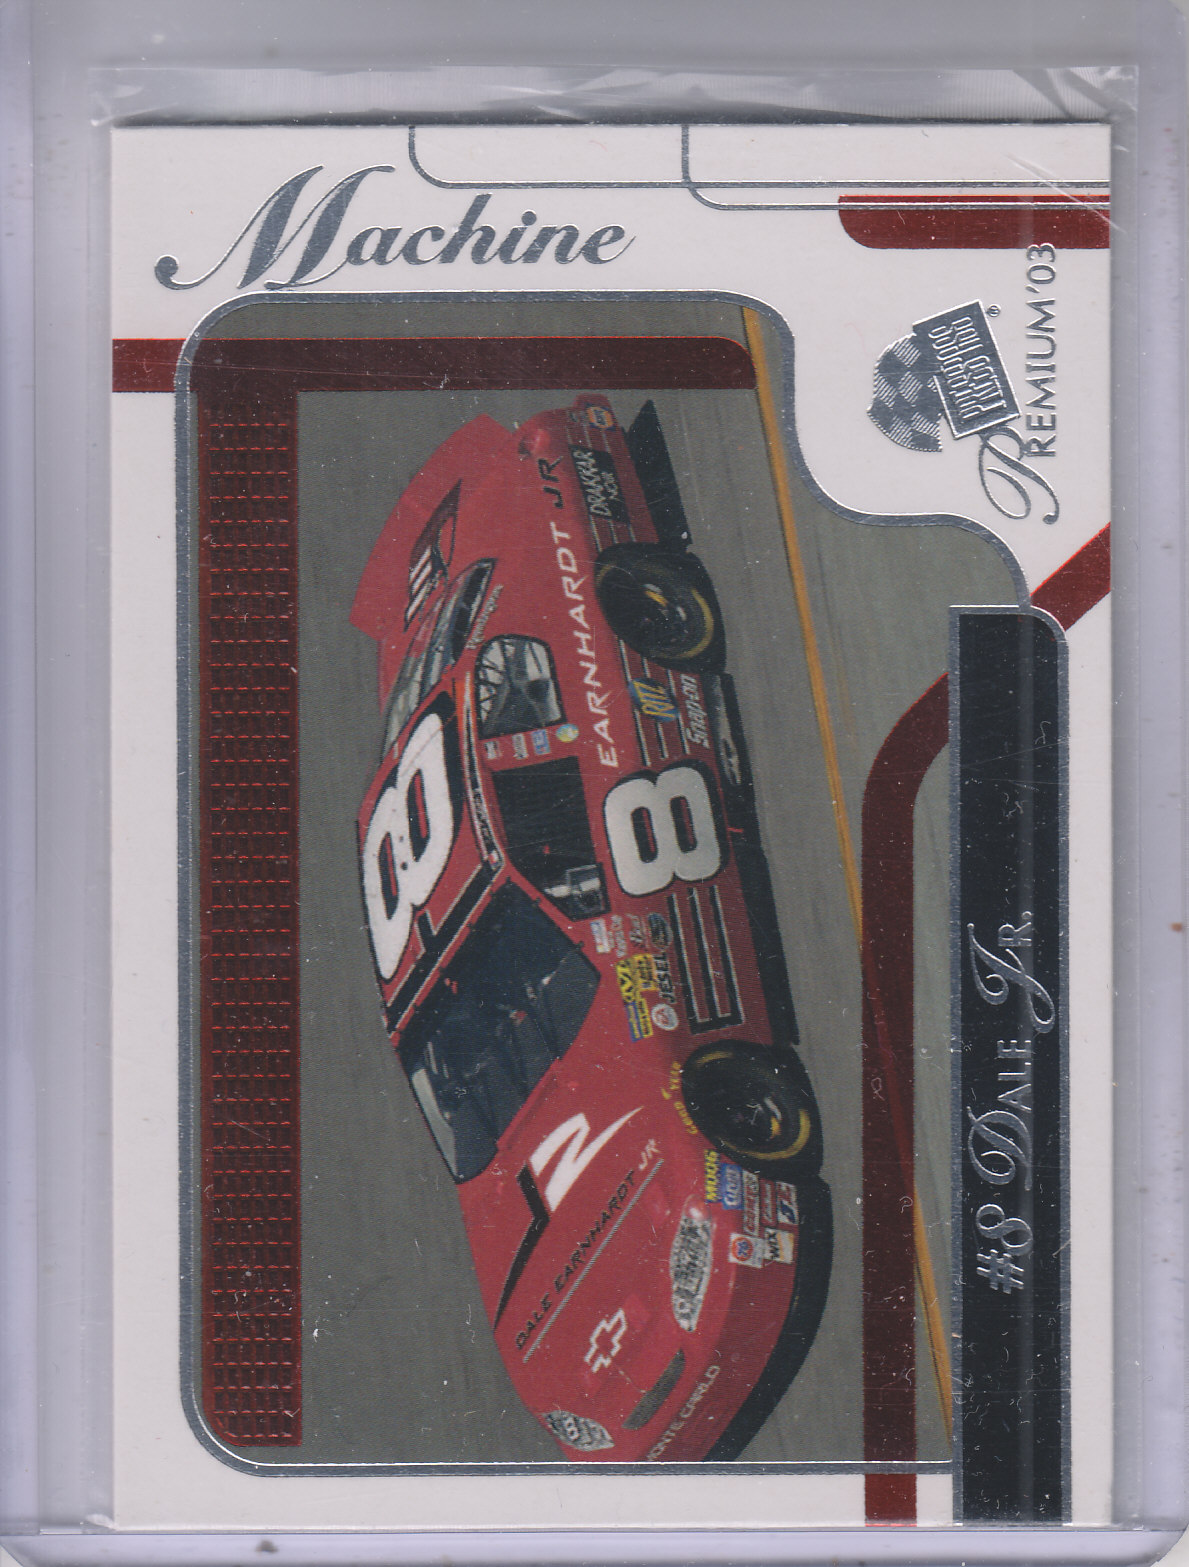 2003 Press Pass Premium Red Reflectors #36 Dale Earnhardt Jr.'s Car